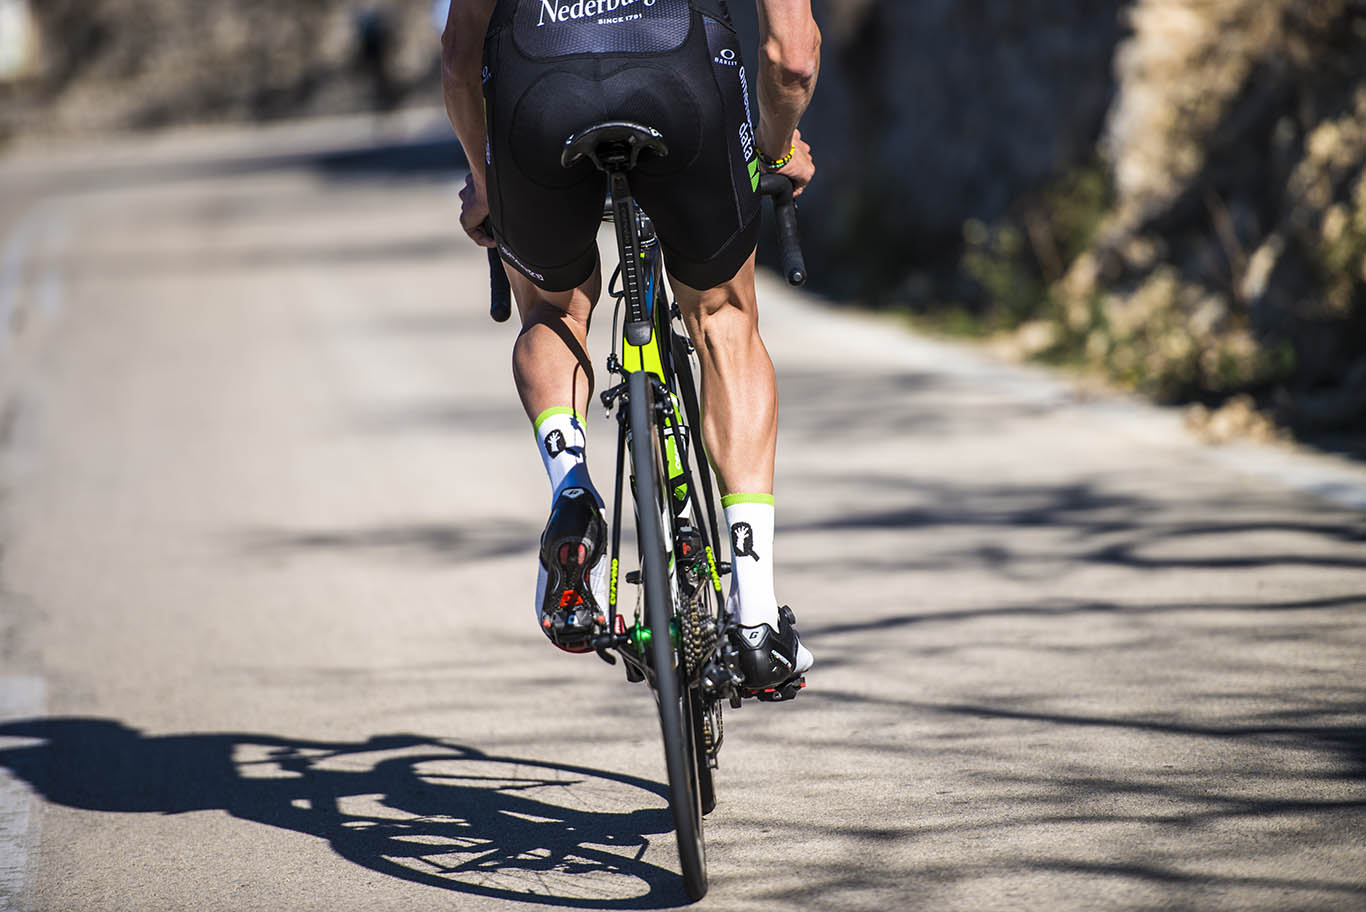 61417f2e0 Team Dimension Data for Qhubeka - Top Tips for Performance